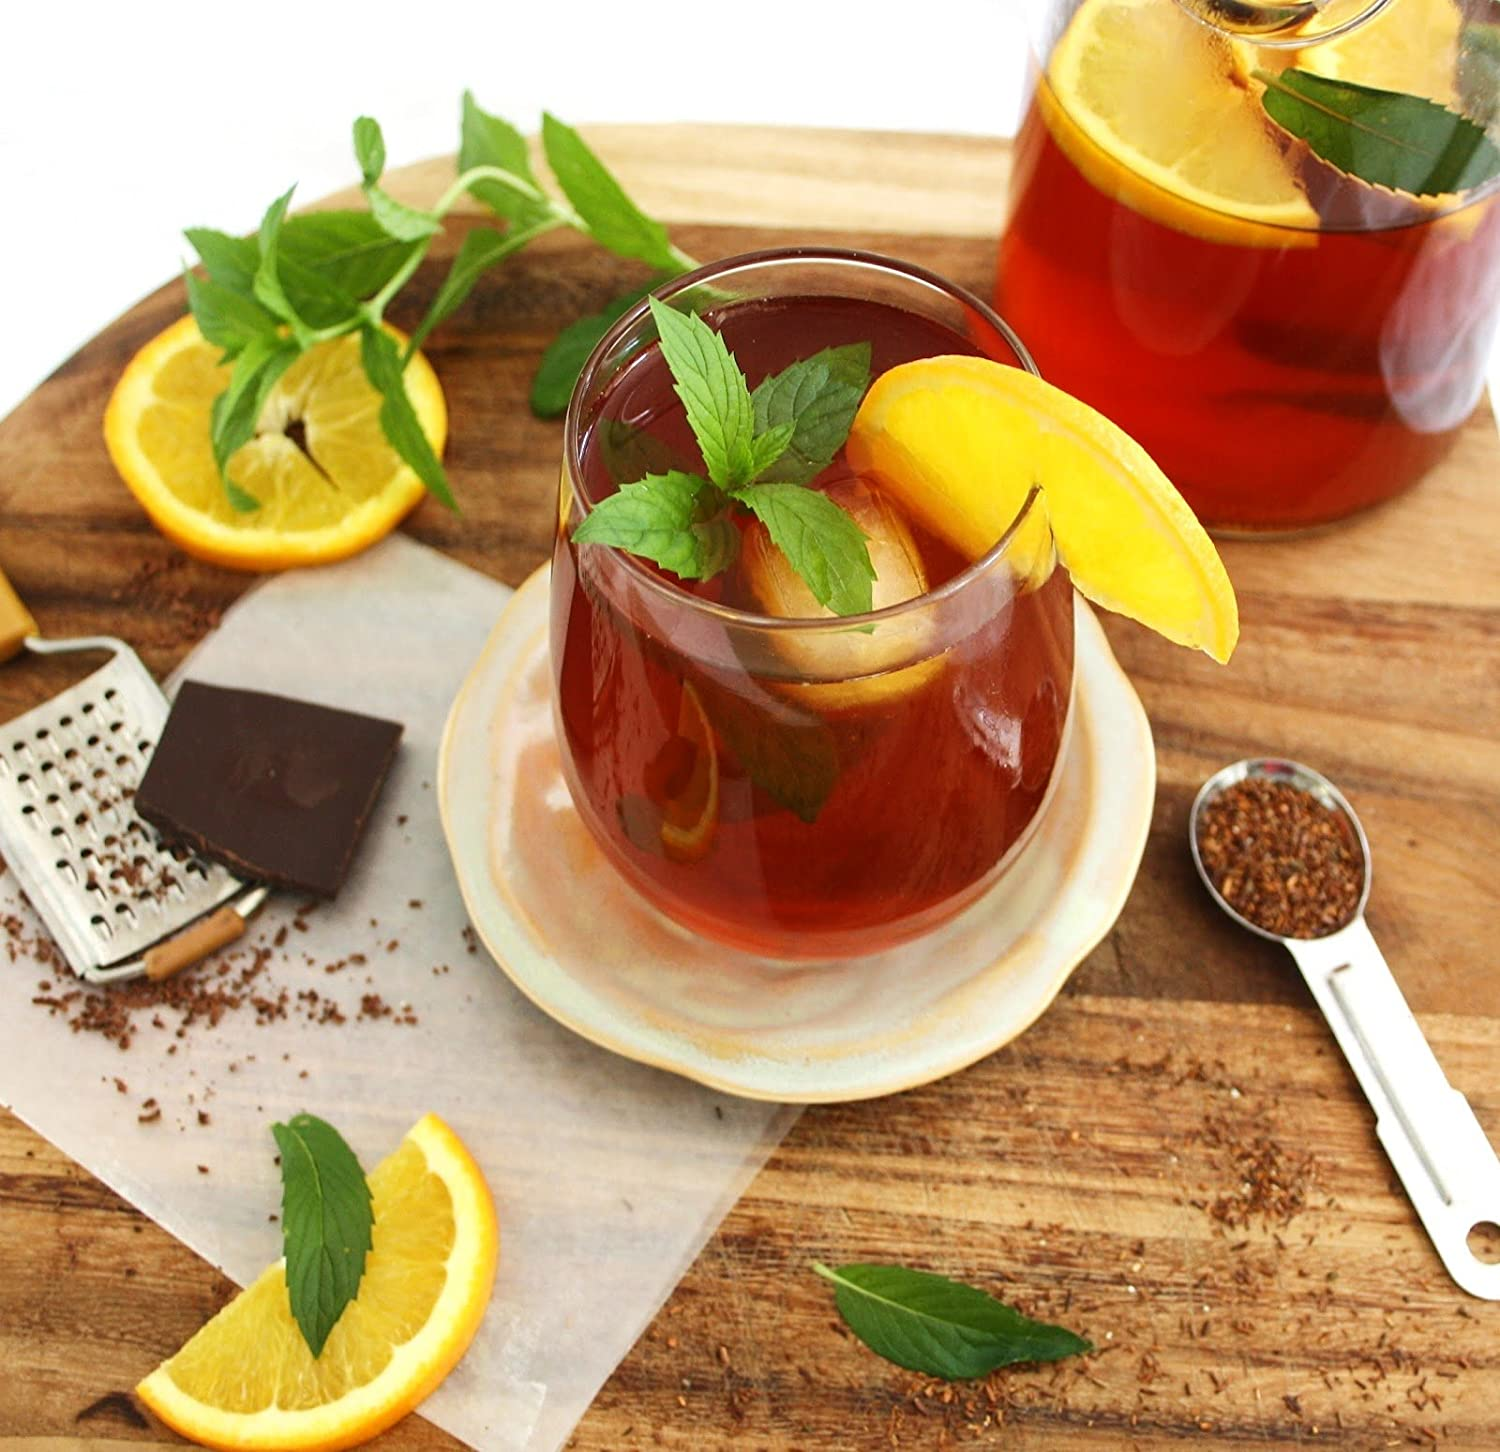 100/% Natural South African Red Bush Tea Rich in Vitamins and Antioxidants 100g Laager Rooibos Loose Leaf Tea 4 oz